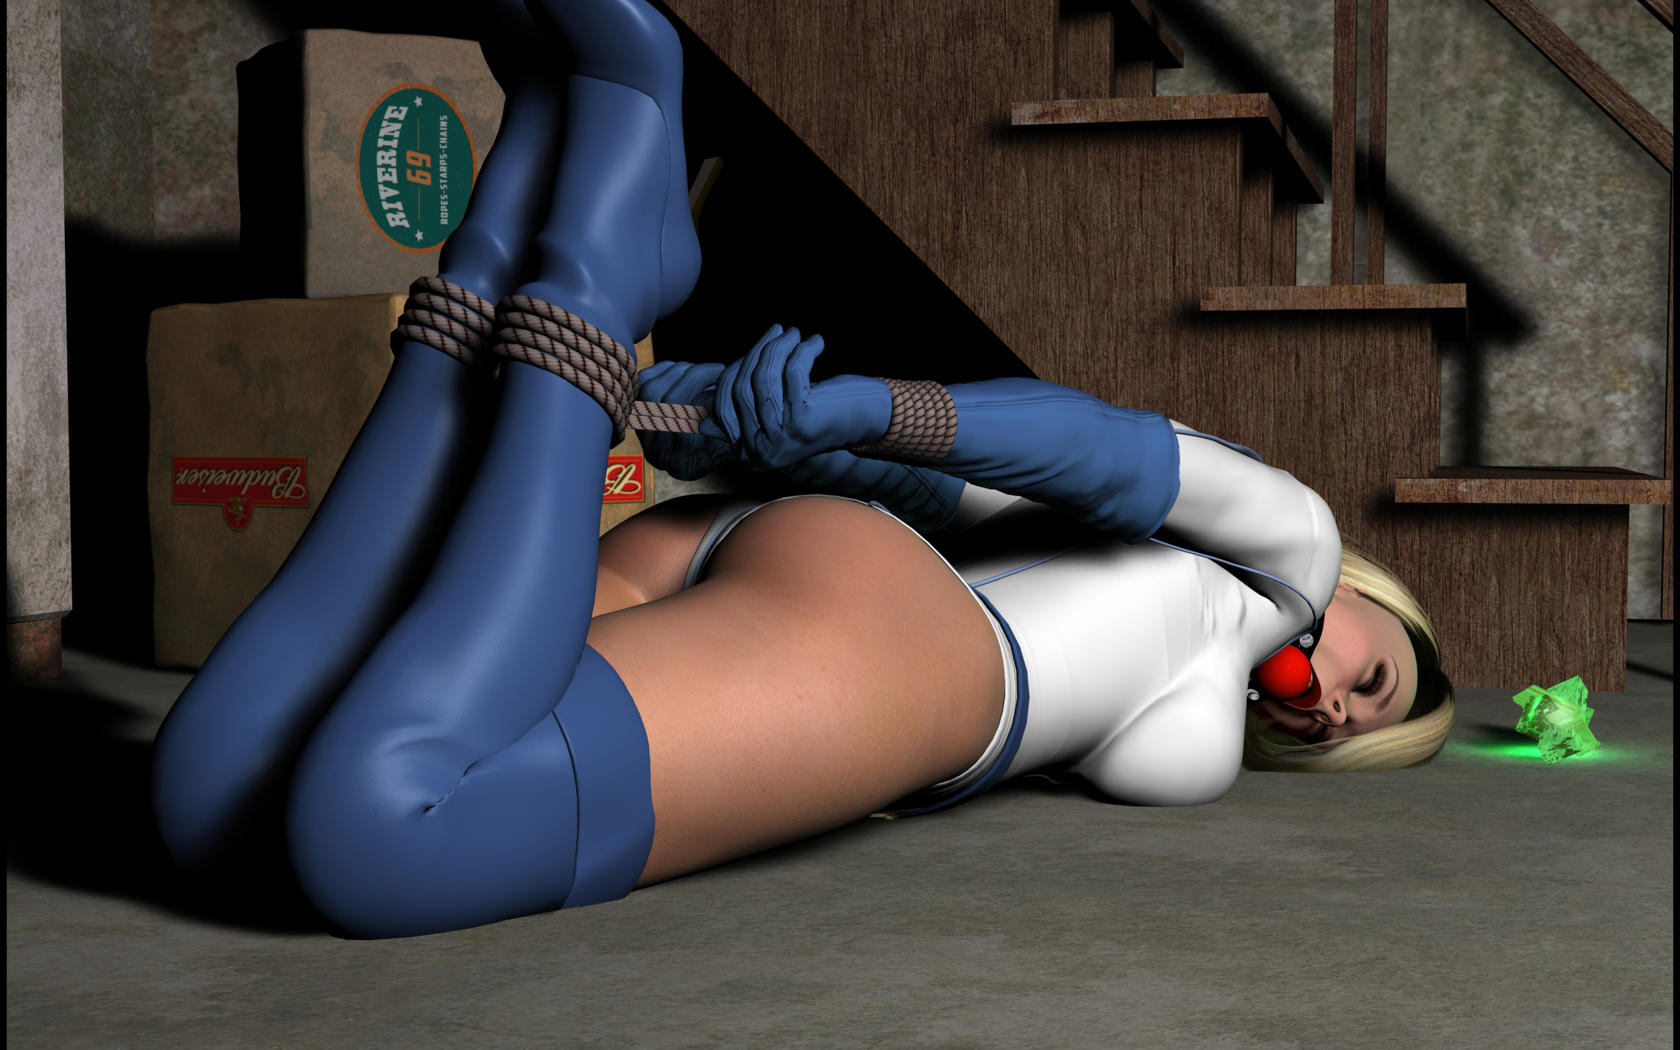 3d, tied up, boots, gloves, blonde, gagged, ballgag